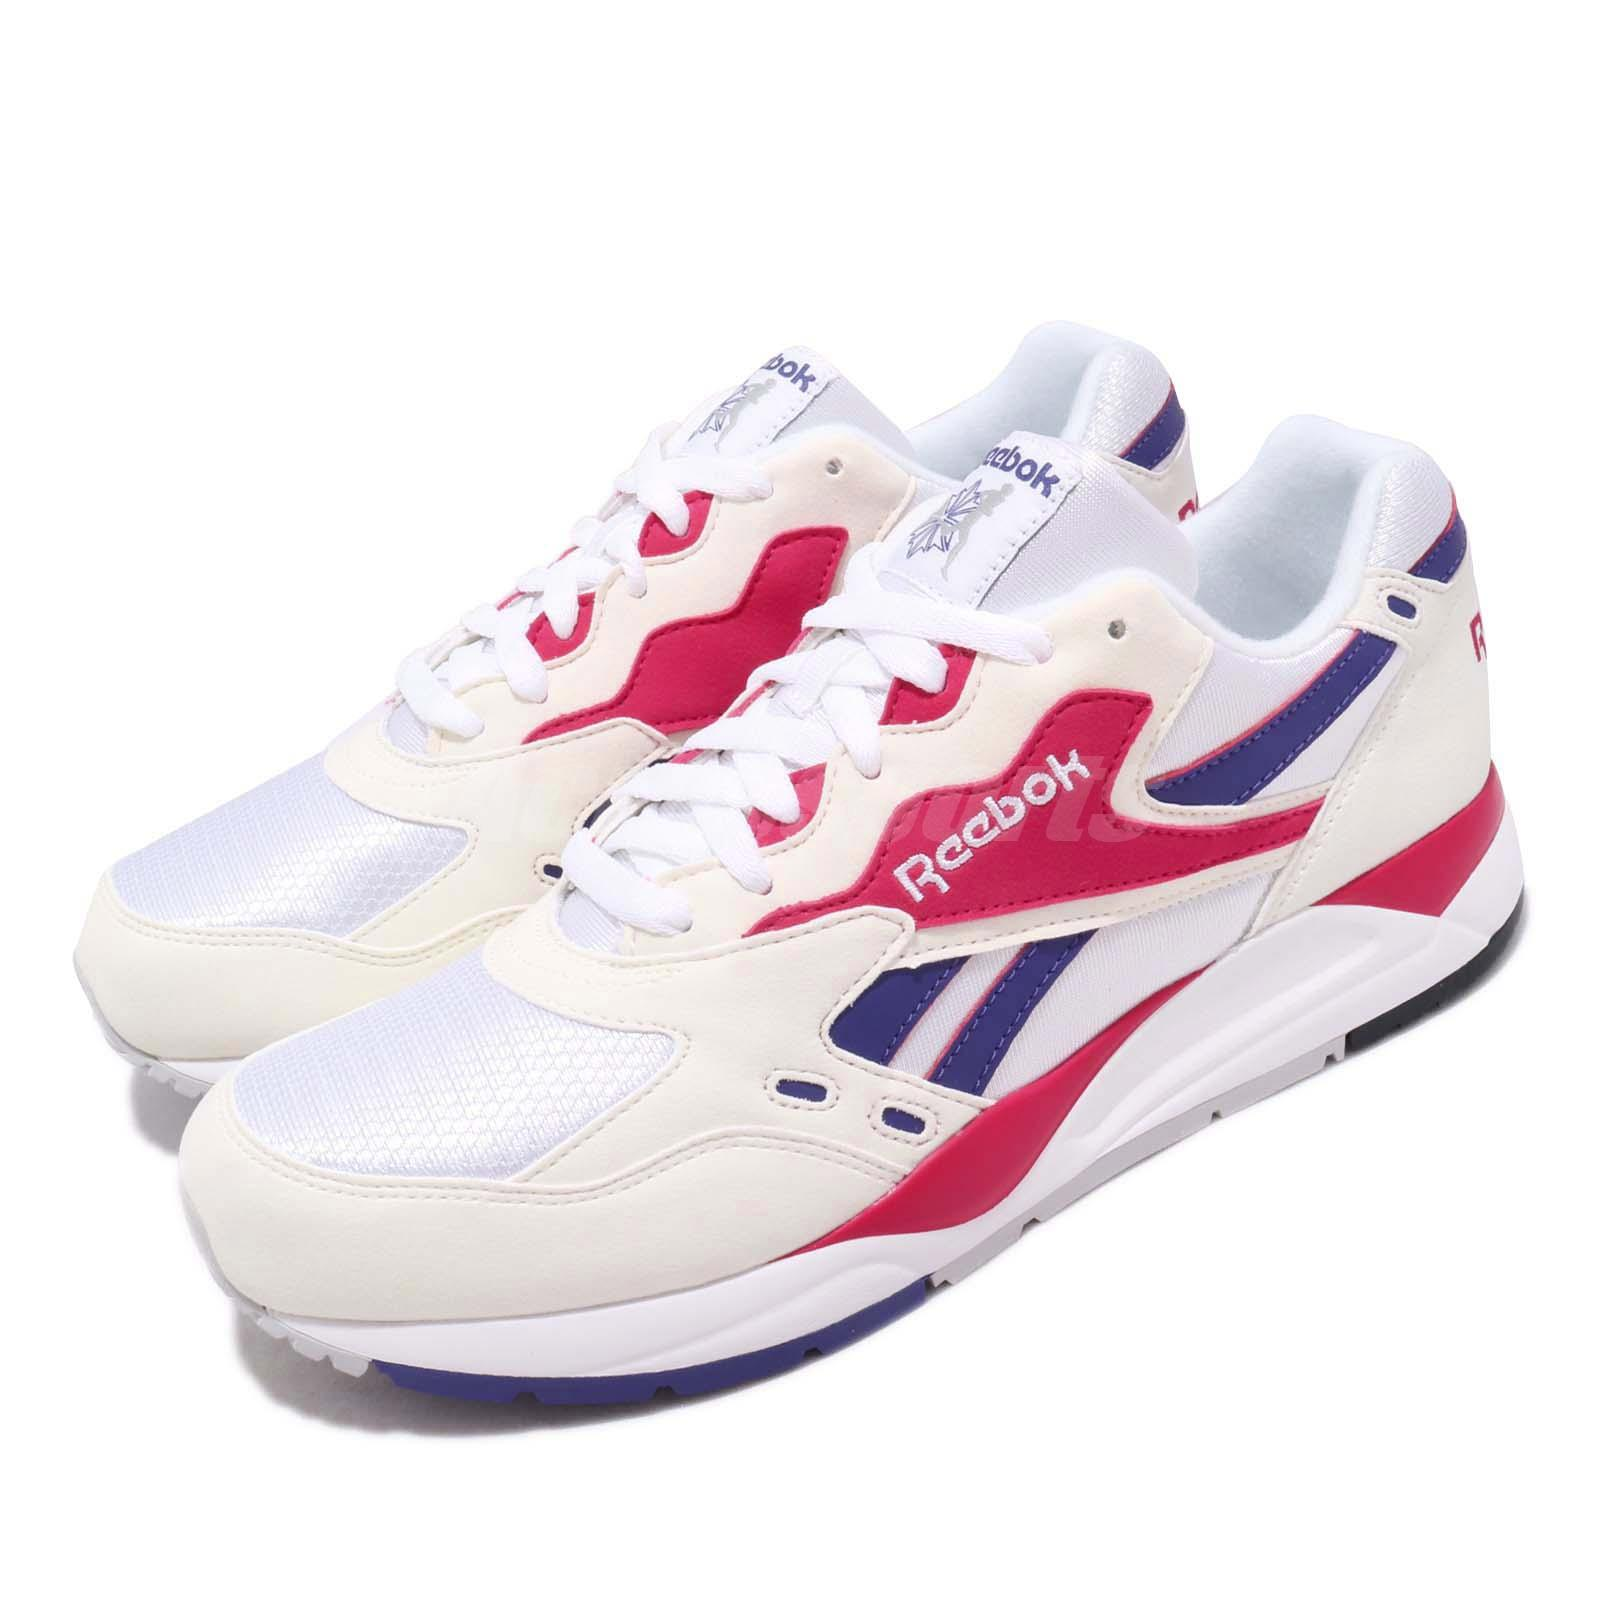 Details about Reebok Bolton Chalk White Magenta Pop Purple Men Running  Shoes Sneakers M49231 378792578